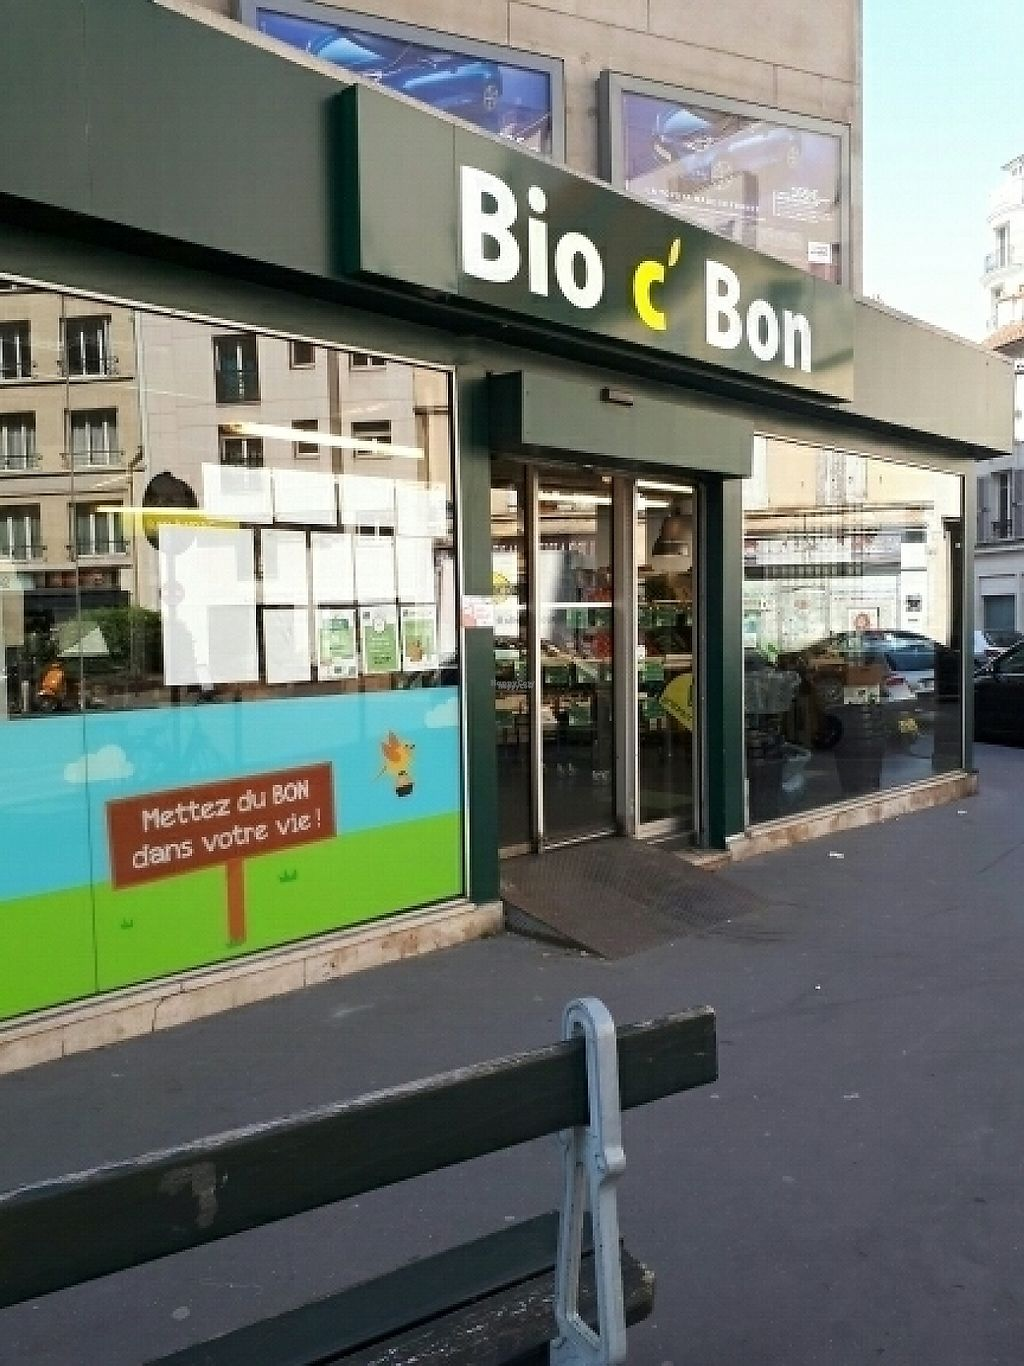 "Photo of Bio c' Bon - Saint-Lambert  by <a href=""/members/profile/PascalB"">PascalB</a> <br/>Store front  <br/> April 21, 2017  - <a href='/contact/abuse/image/64818/250566'>Report</a>"